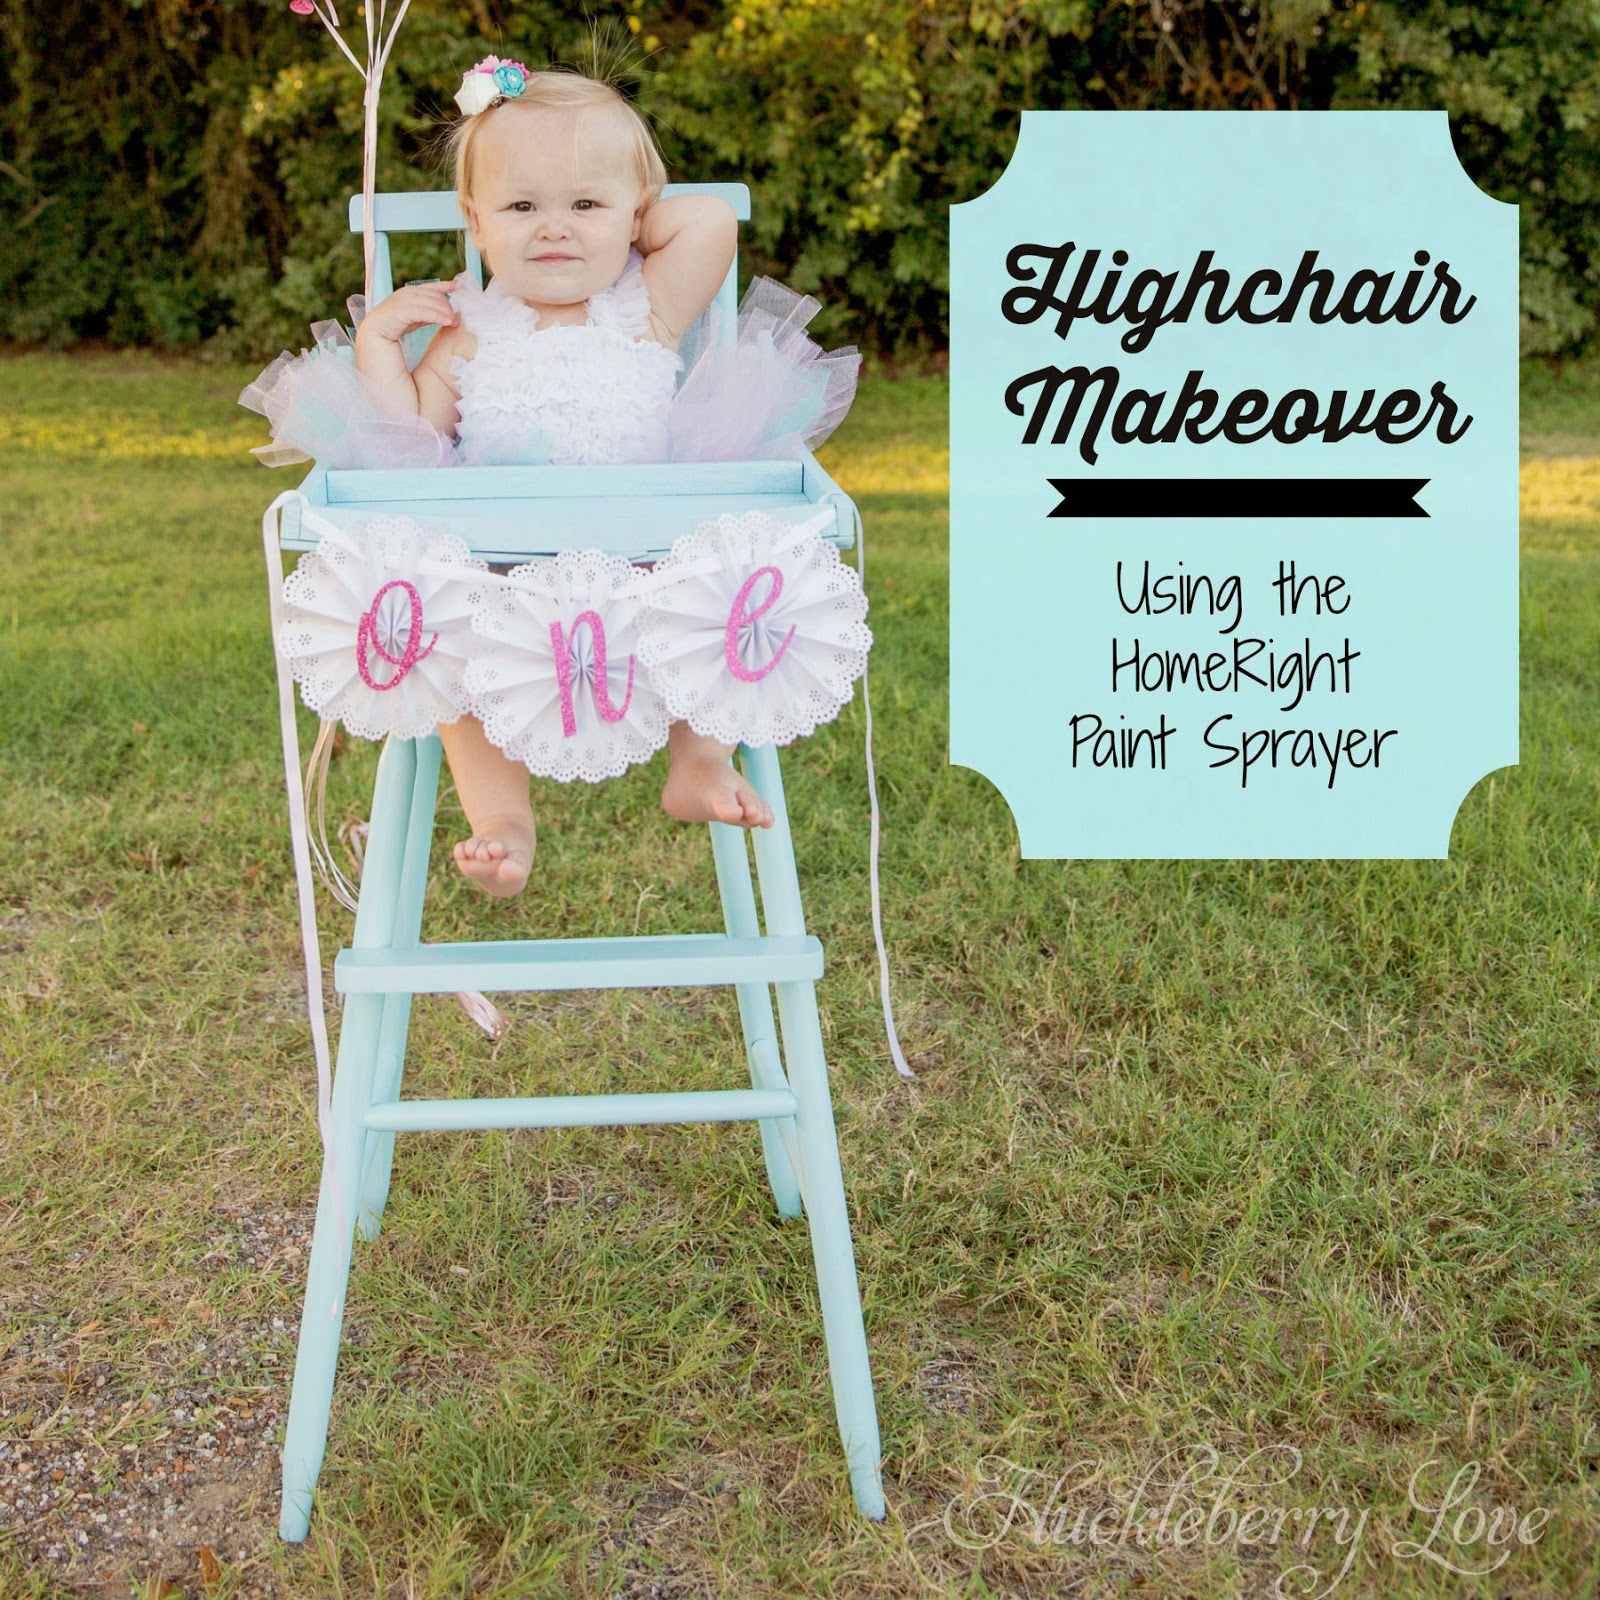 huckleberry love: highchair makeover {using the homeright paint